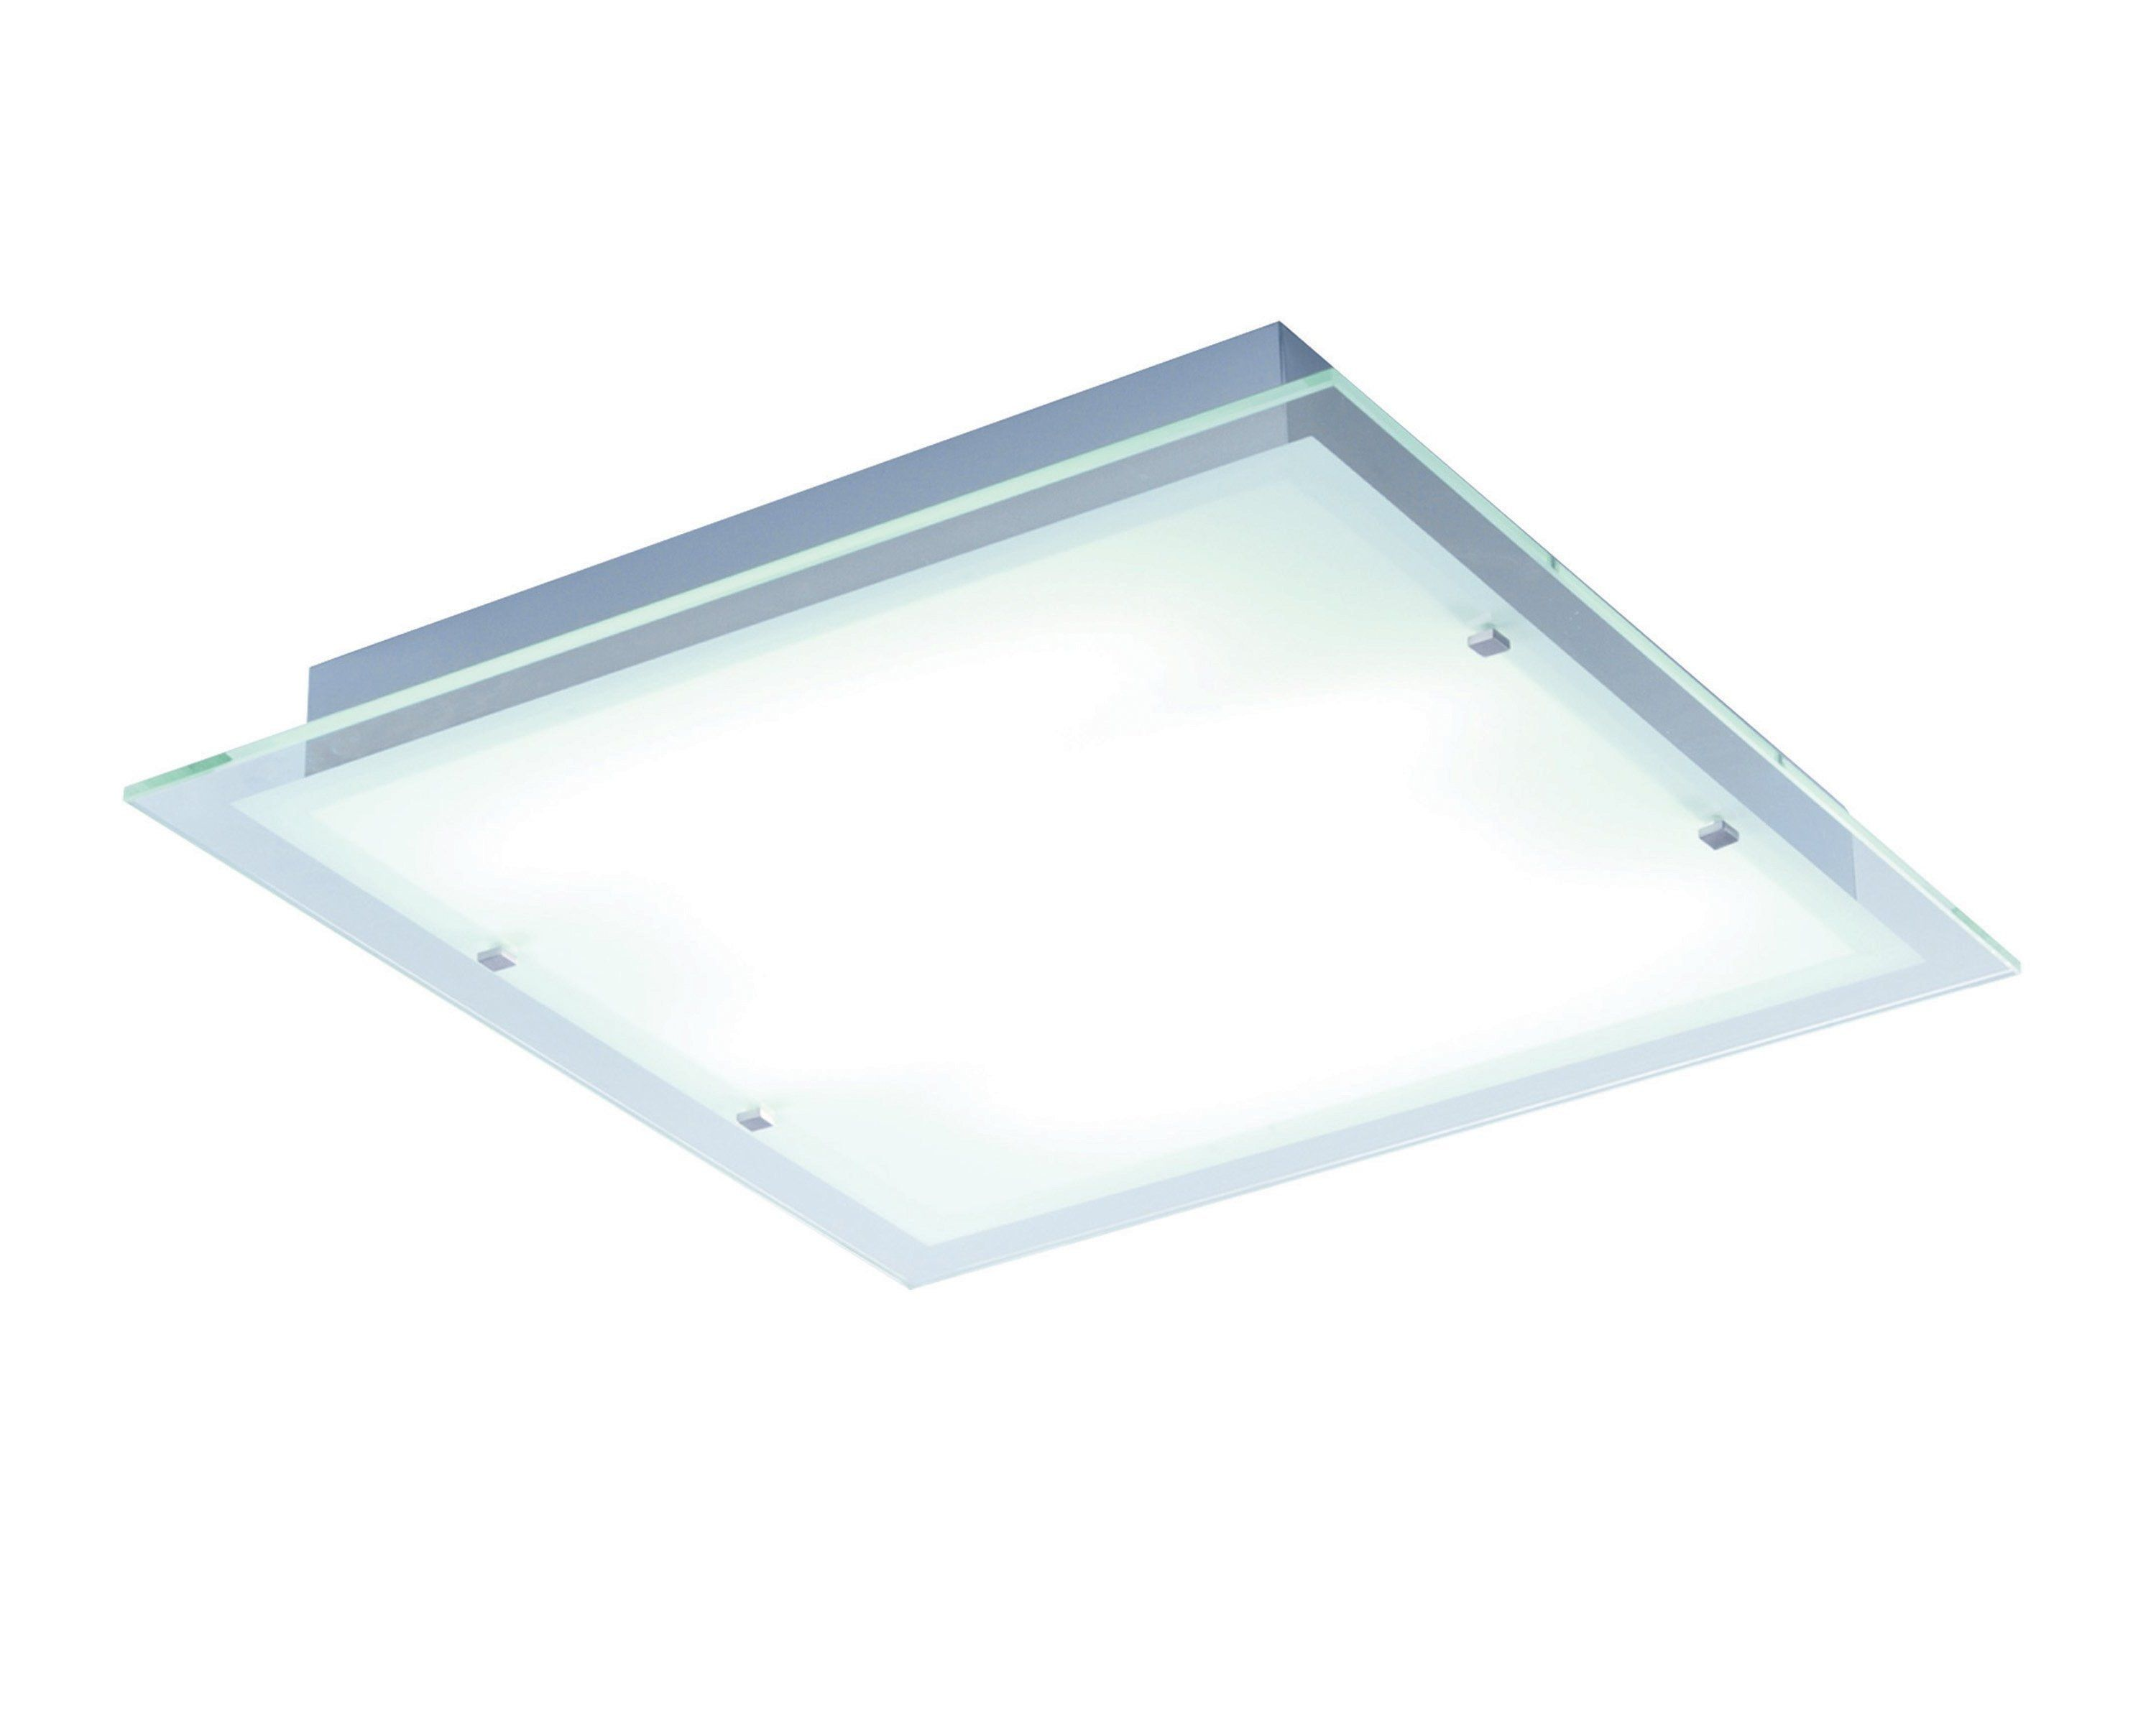 Light Cover For Bathroom Exhaust Fan